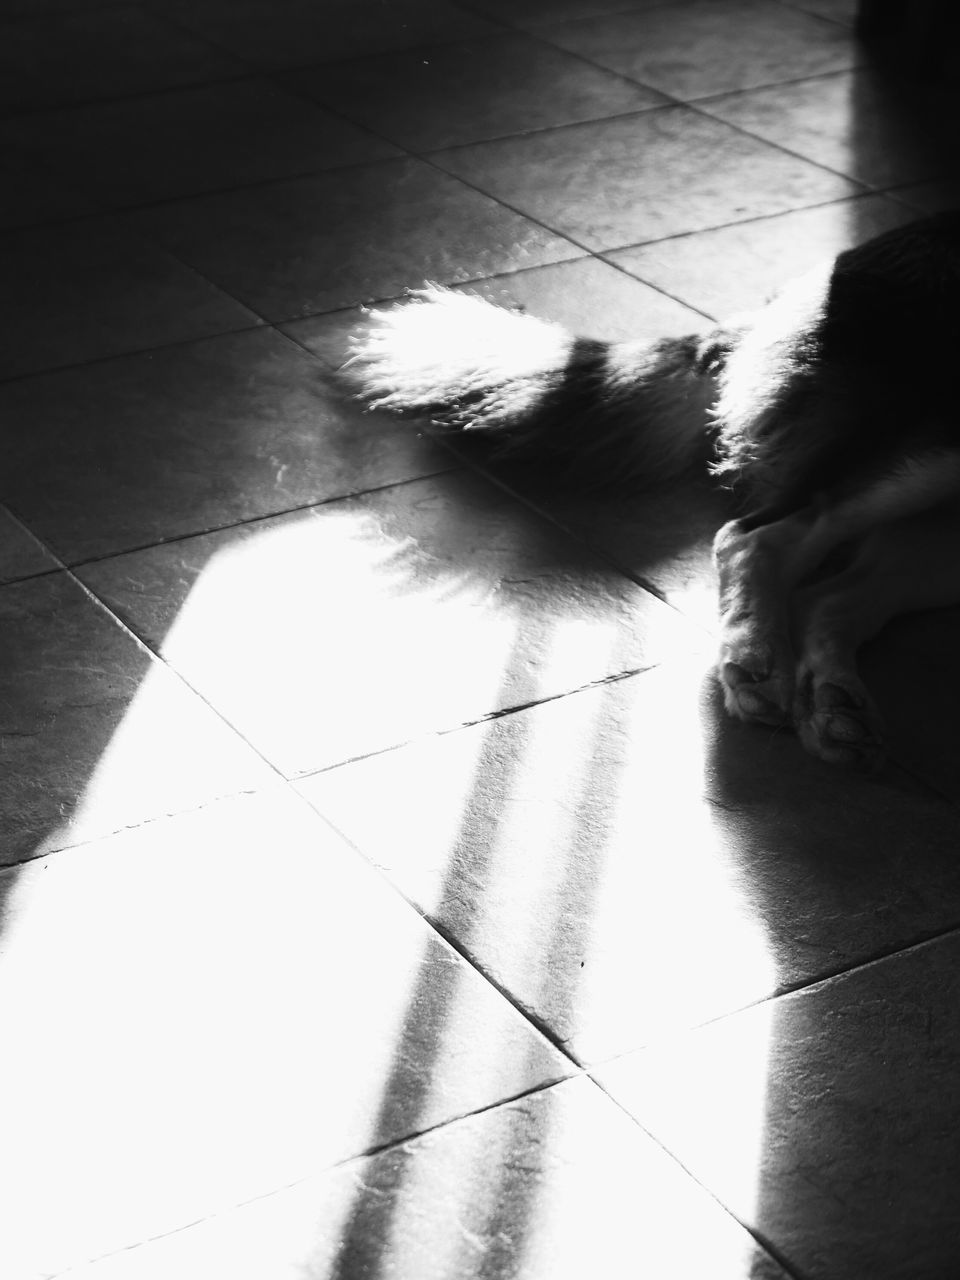 pets, domestic animals, one animal, flooring, animal themes, mammal, dog, indoors, tiled floor, domestic cat, animal, day, no people, close-up, low section